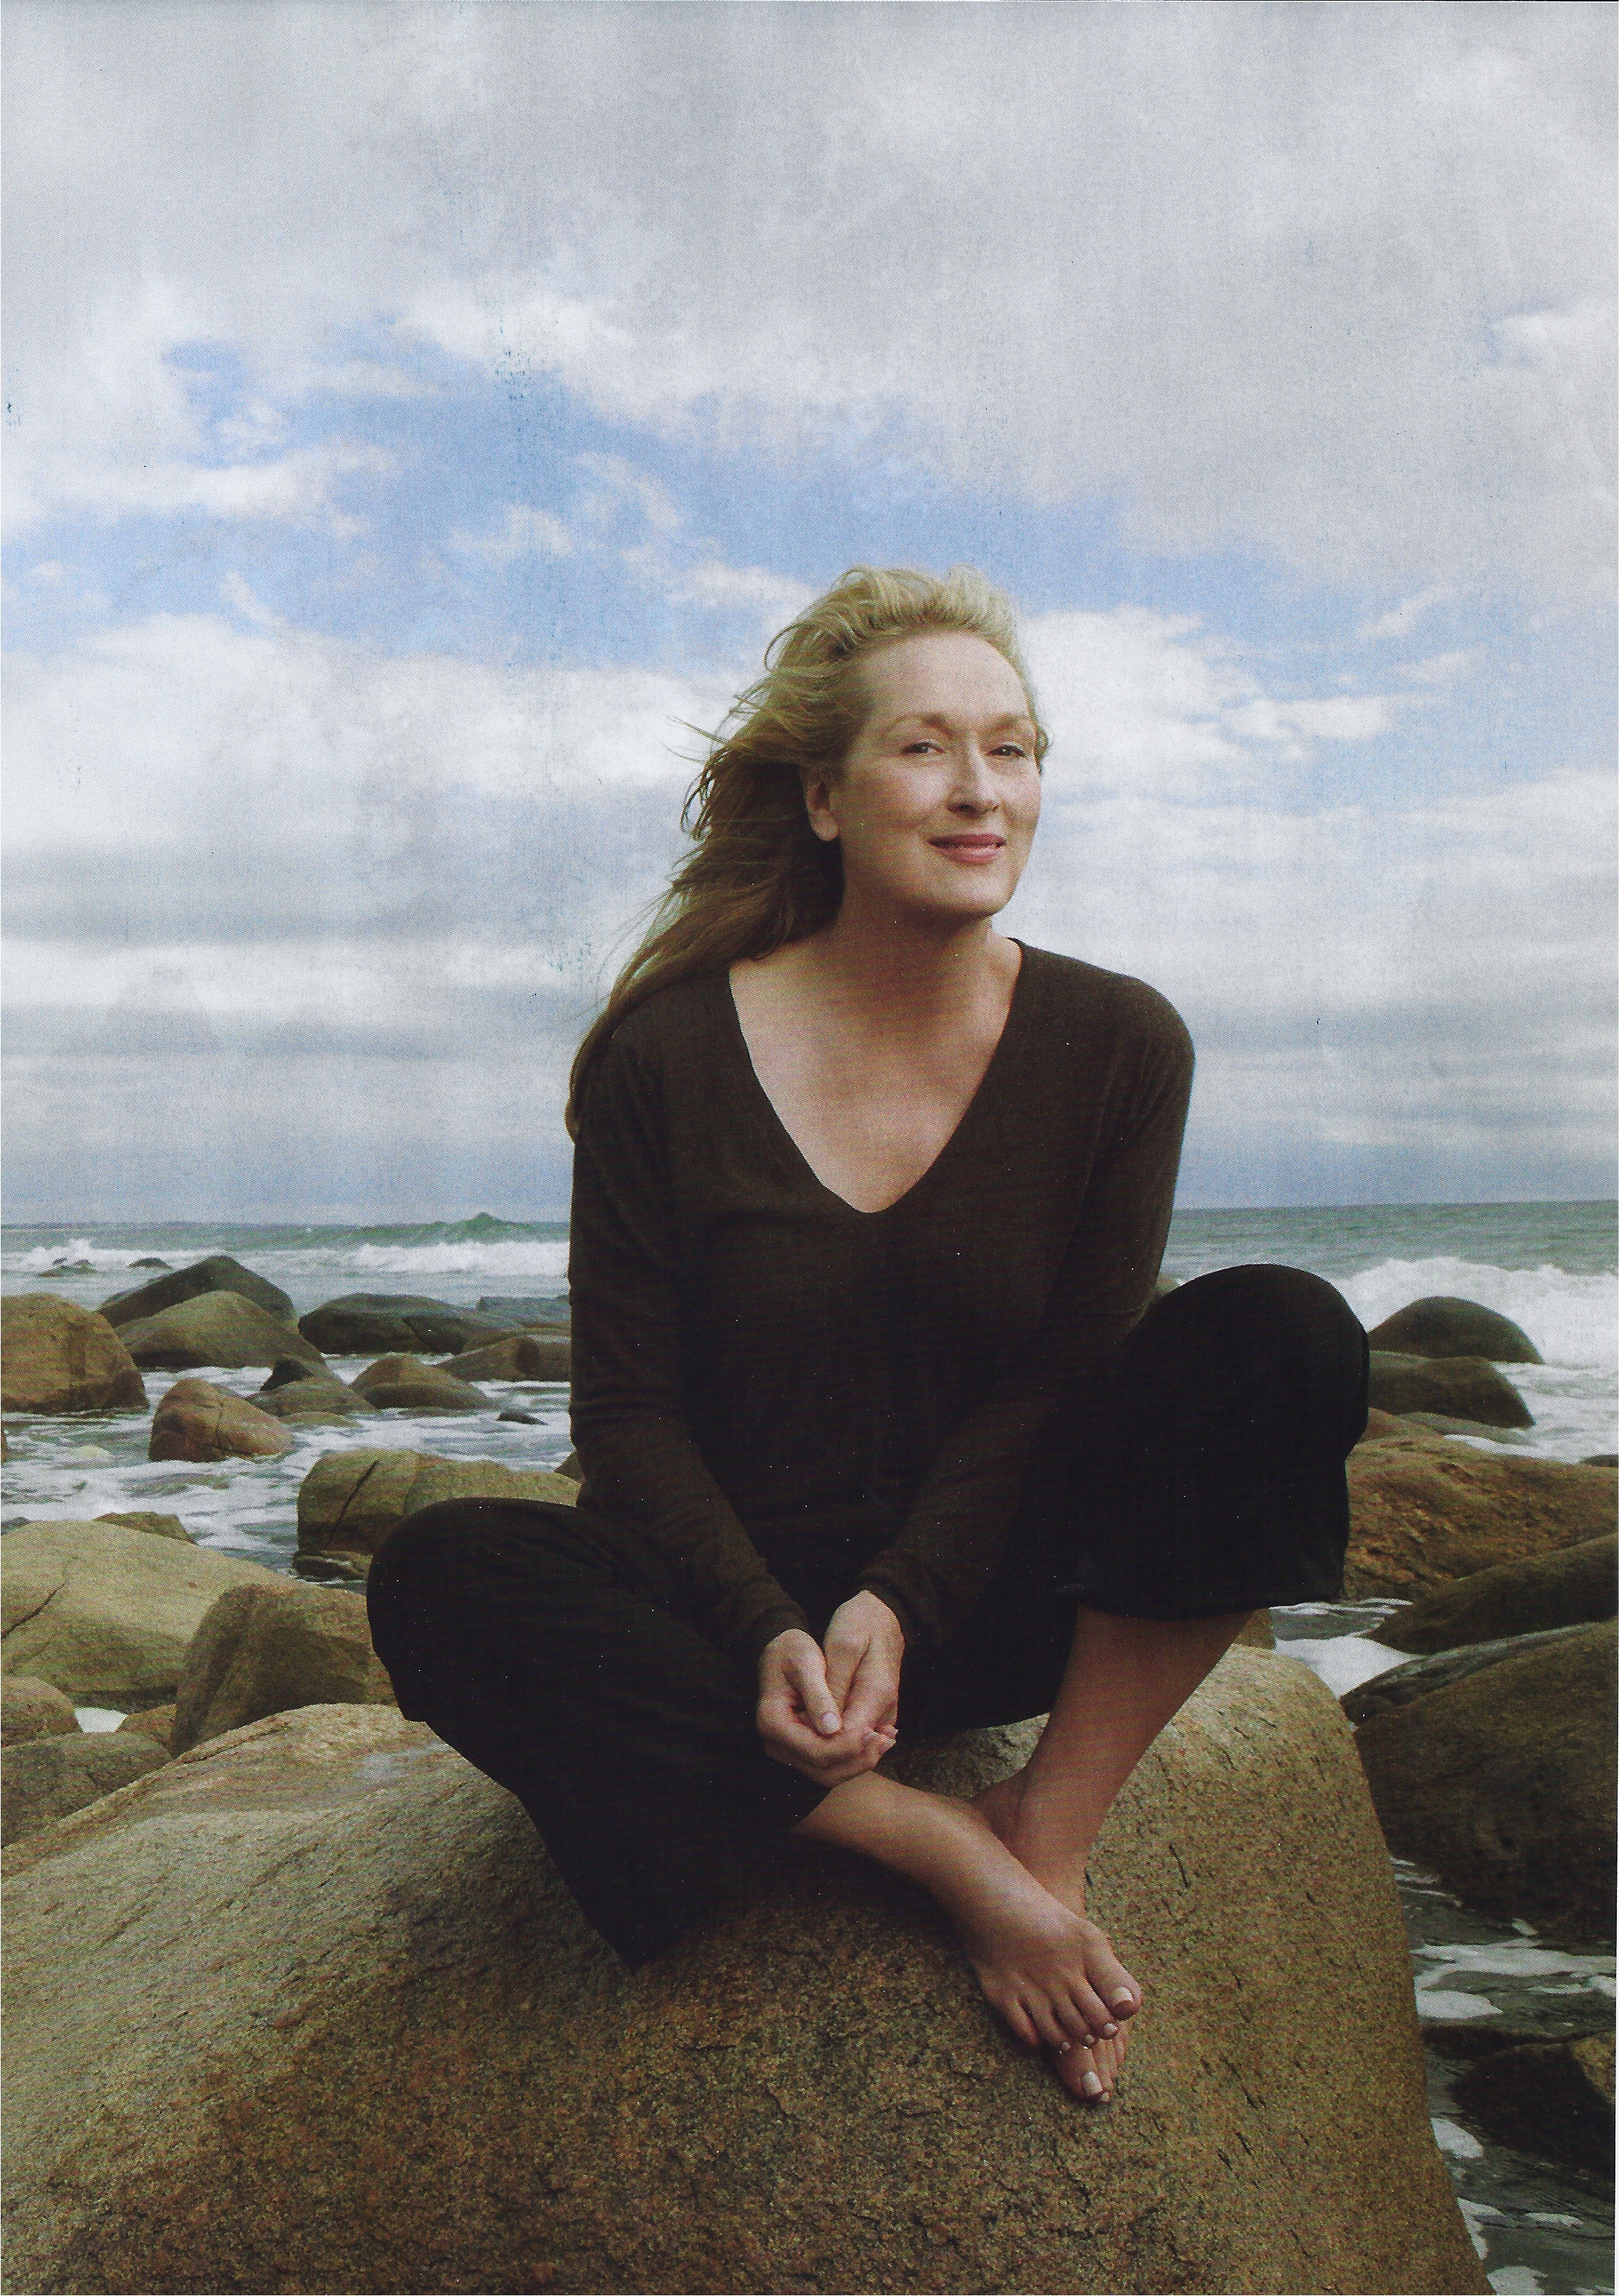 Vogue January 2012: Meryl Streep